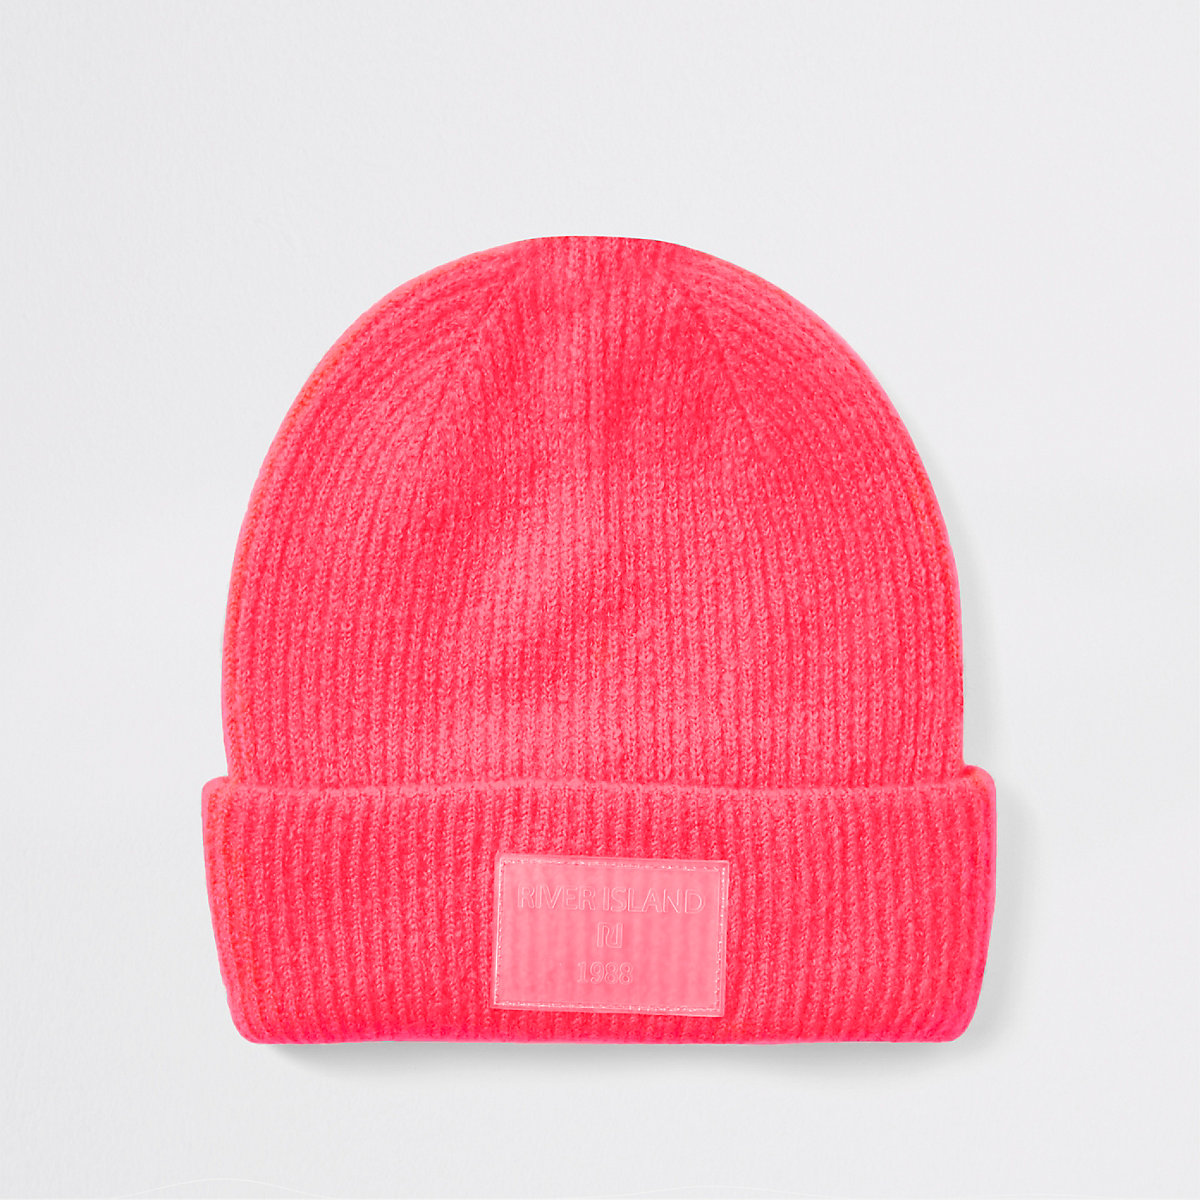 Bright pink beanie hat - Hats - Accessories - women 4a8fa6f0986